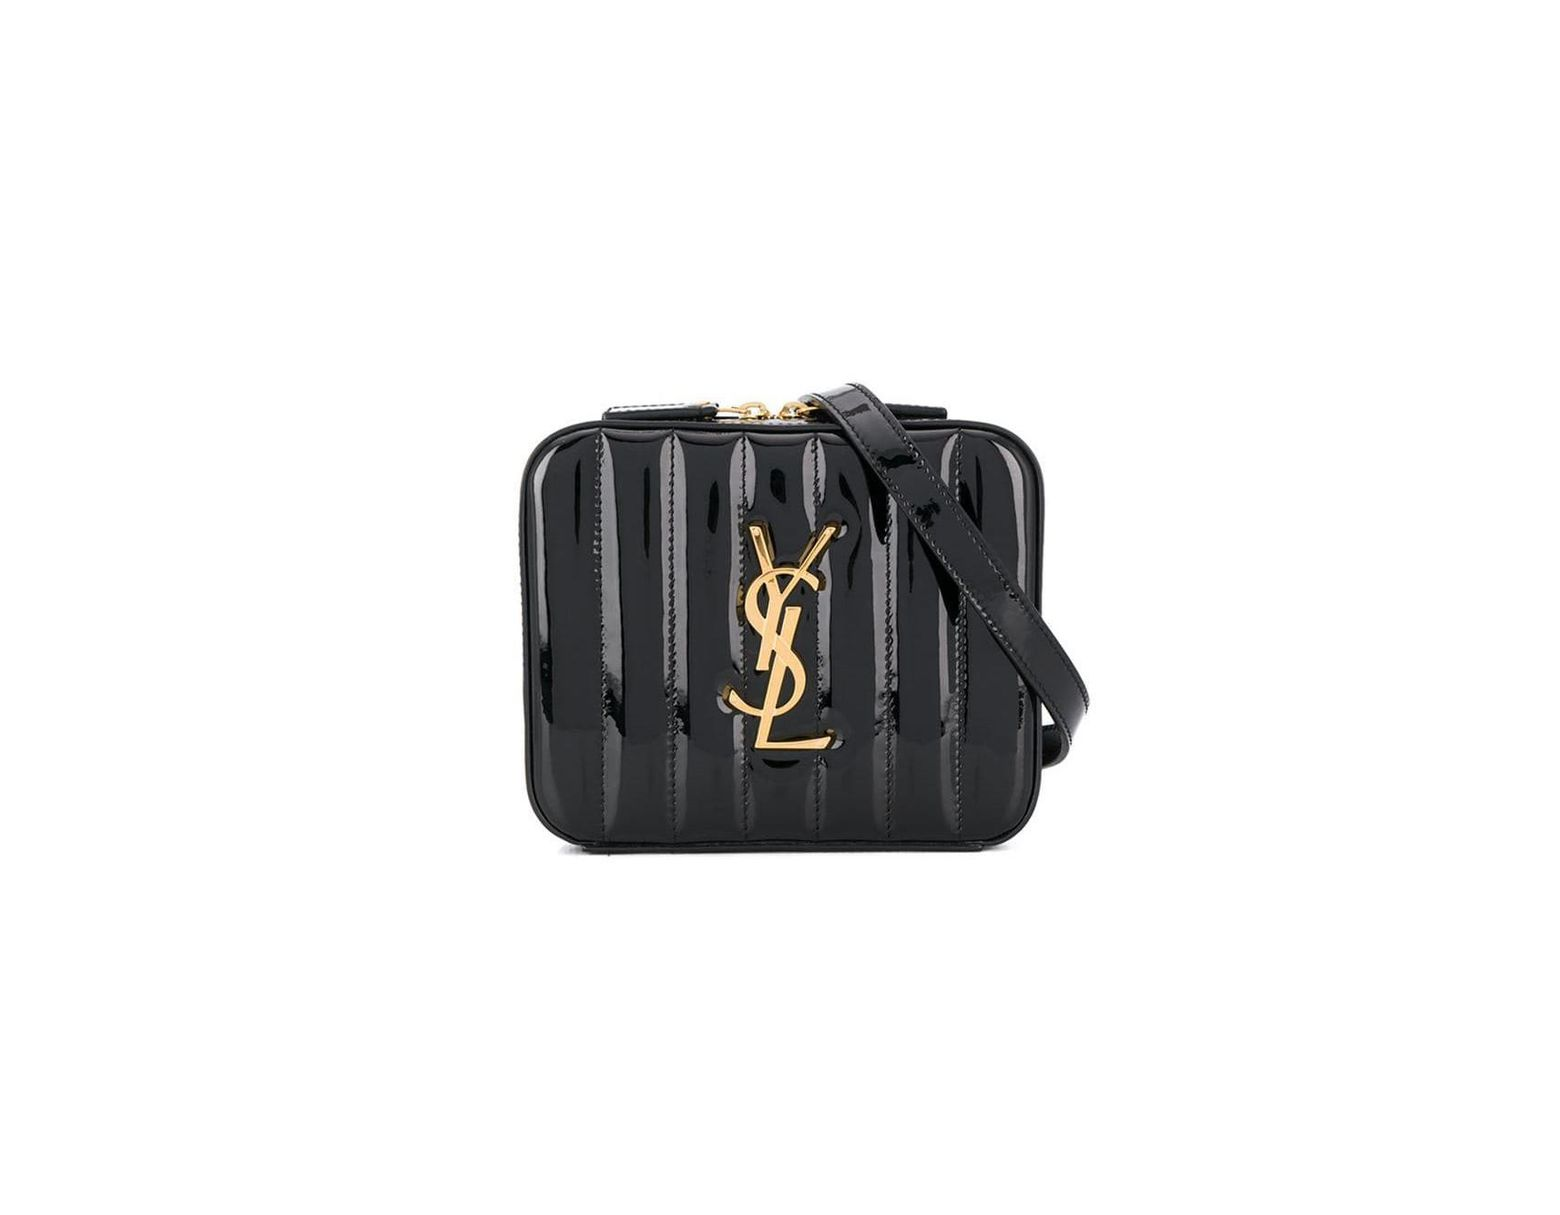 319ce1bb35b Saint Laurent Ysl Vicky Belt Bag In Quilted Patent Leather in Black - Save  2% - Lyst